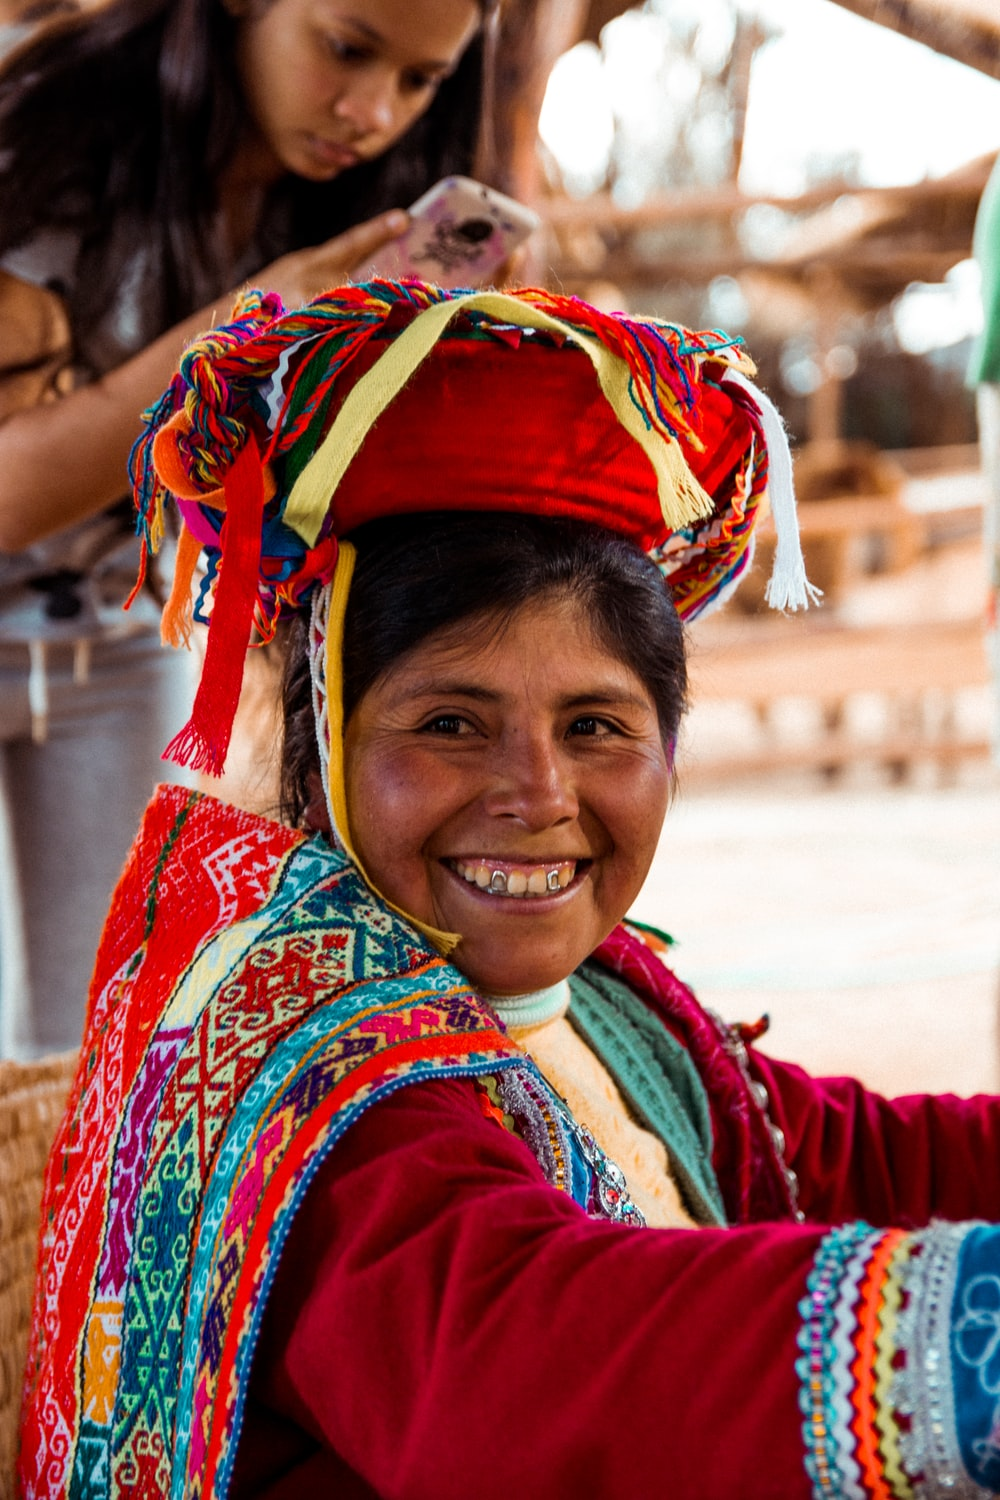 woman wearing multicolored traditional dress